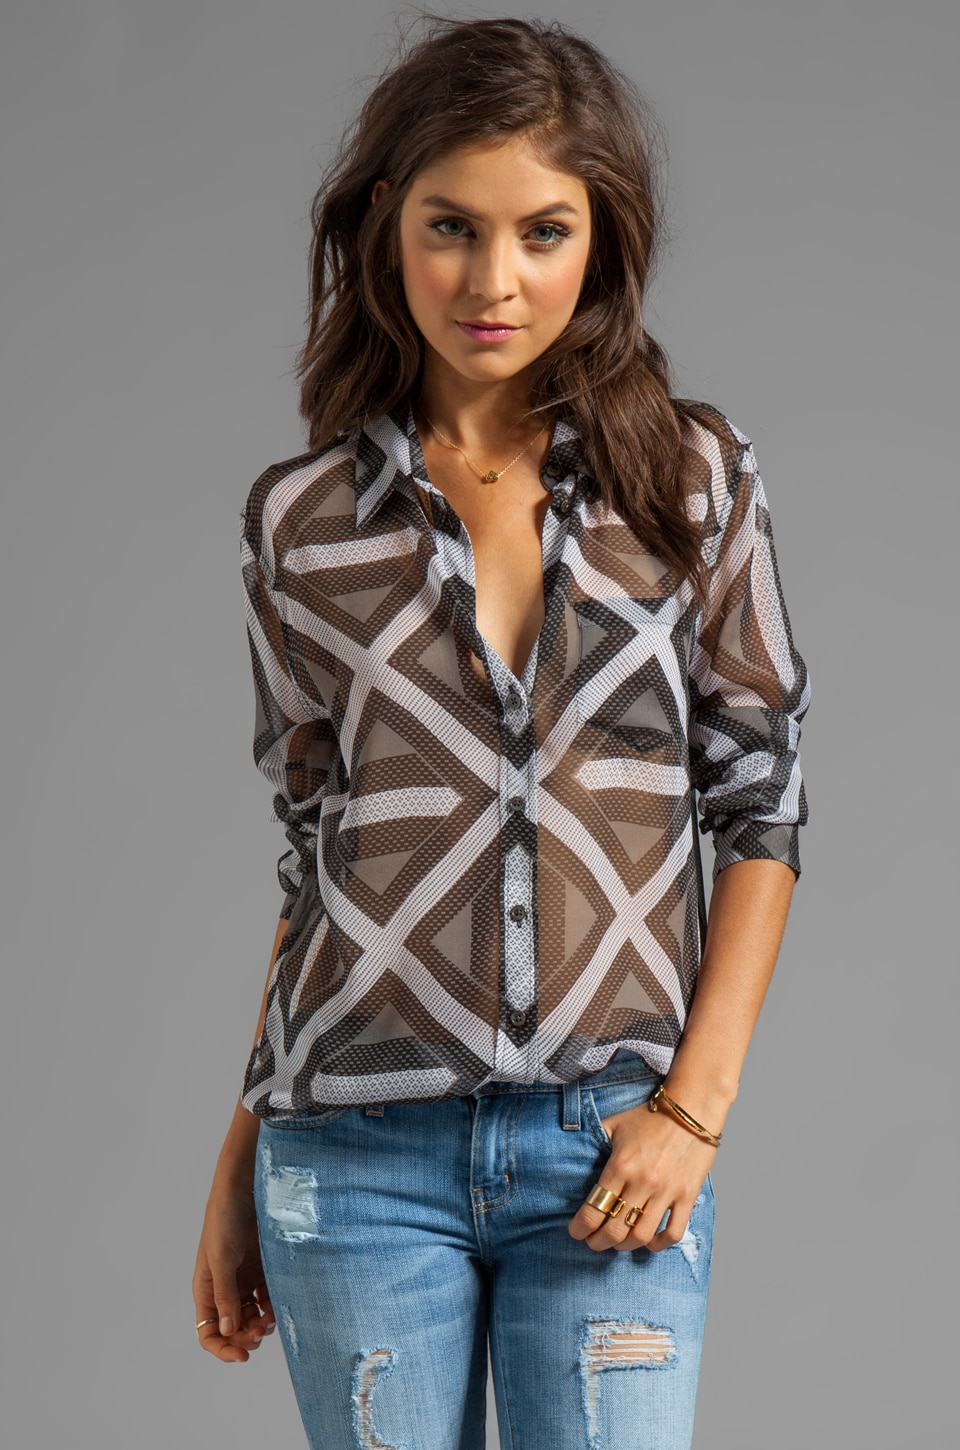 Equipment Linear Jacked Printed Reese Blouse in Black